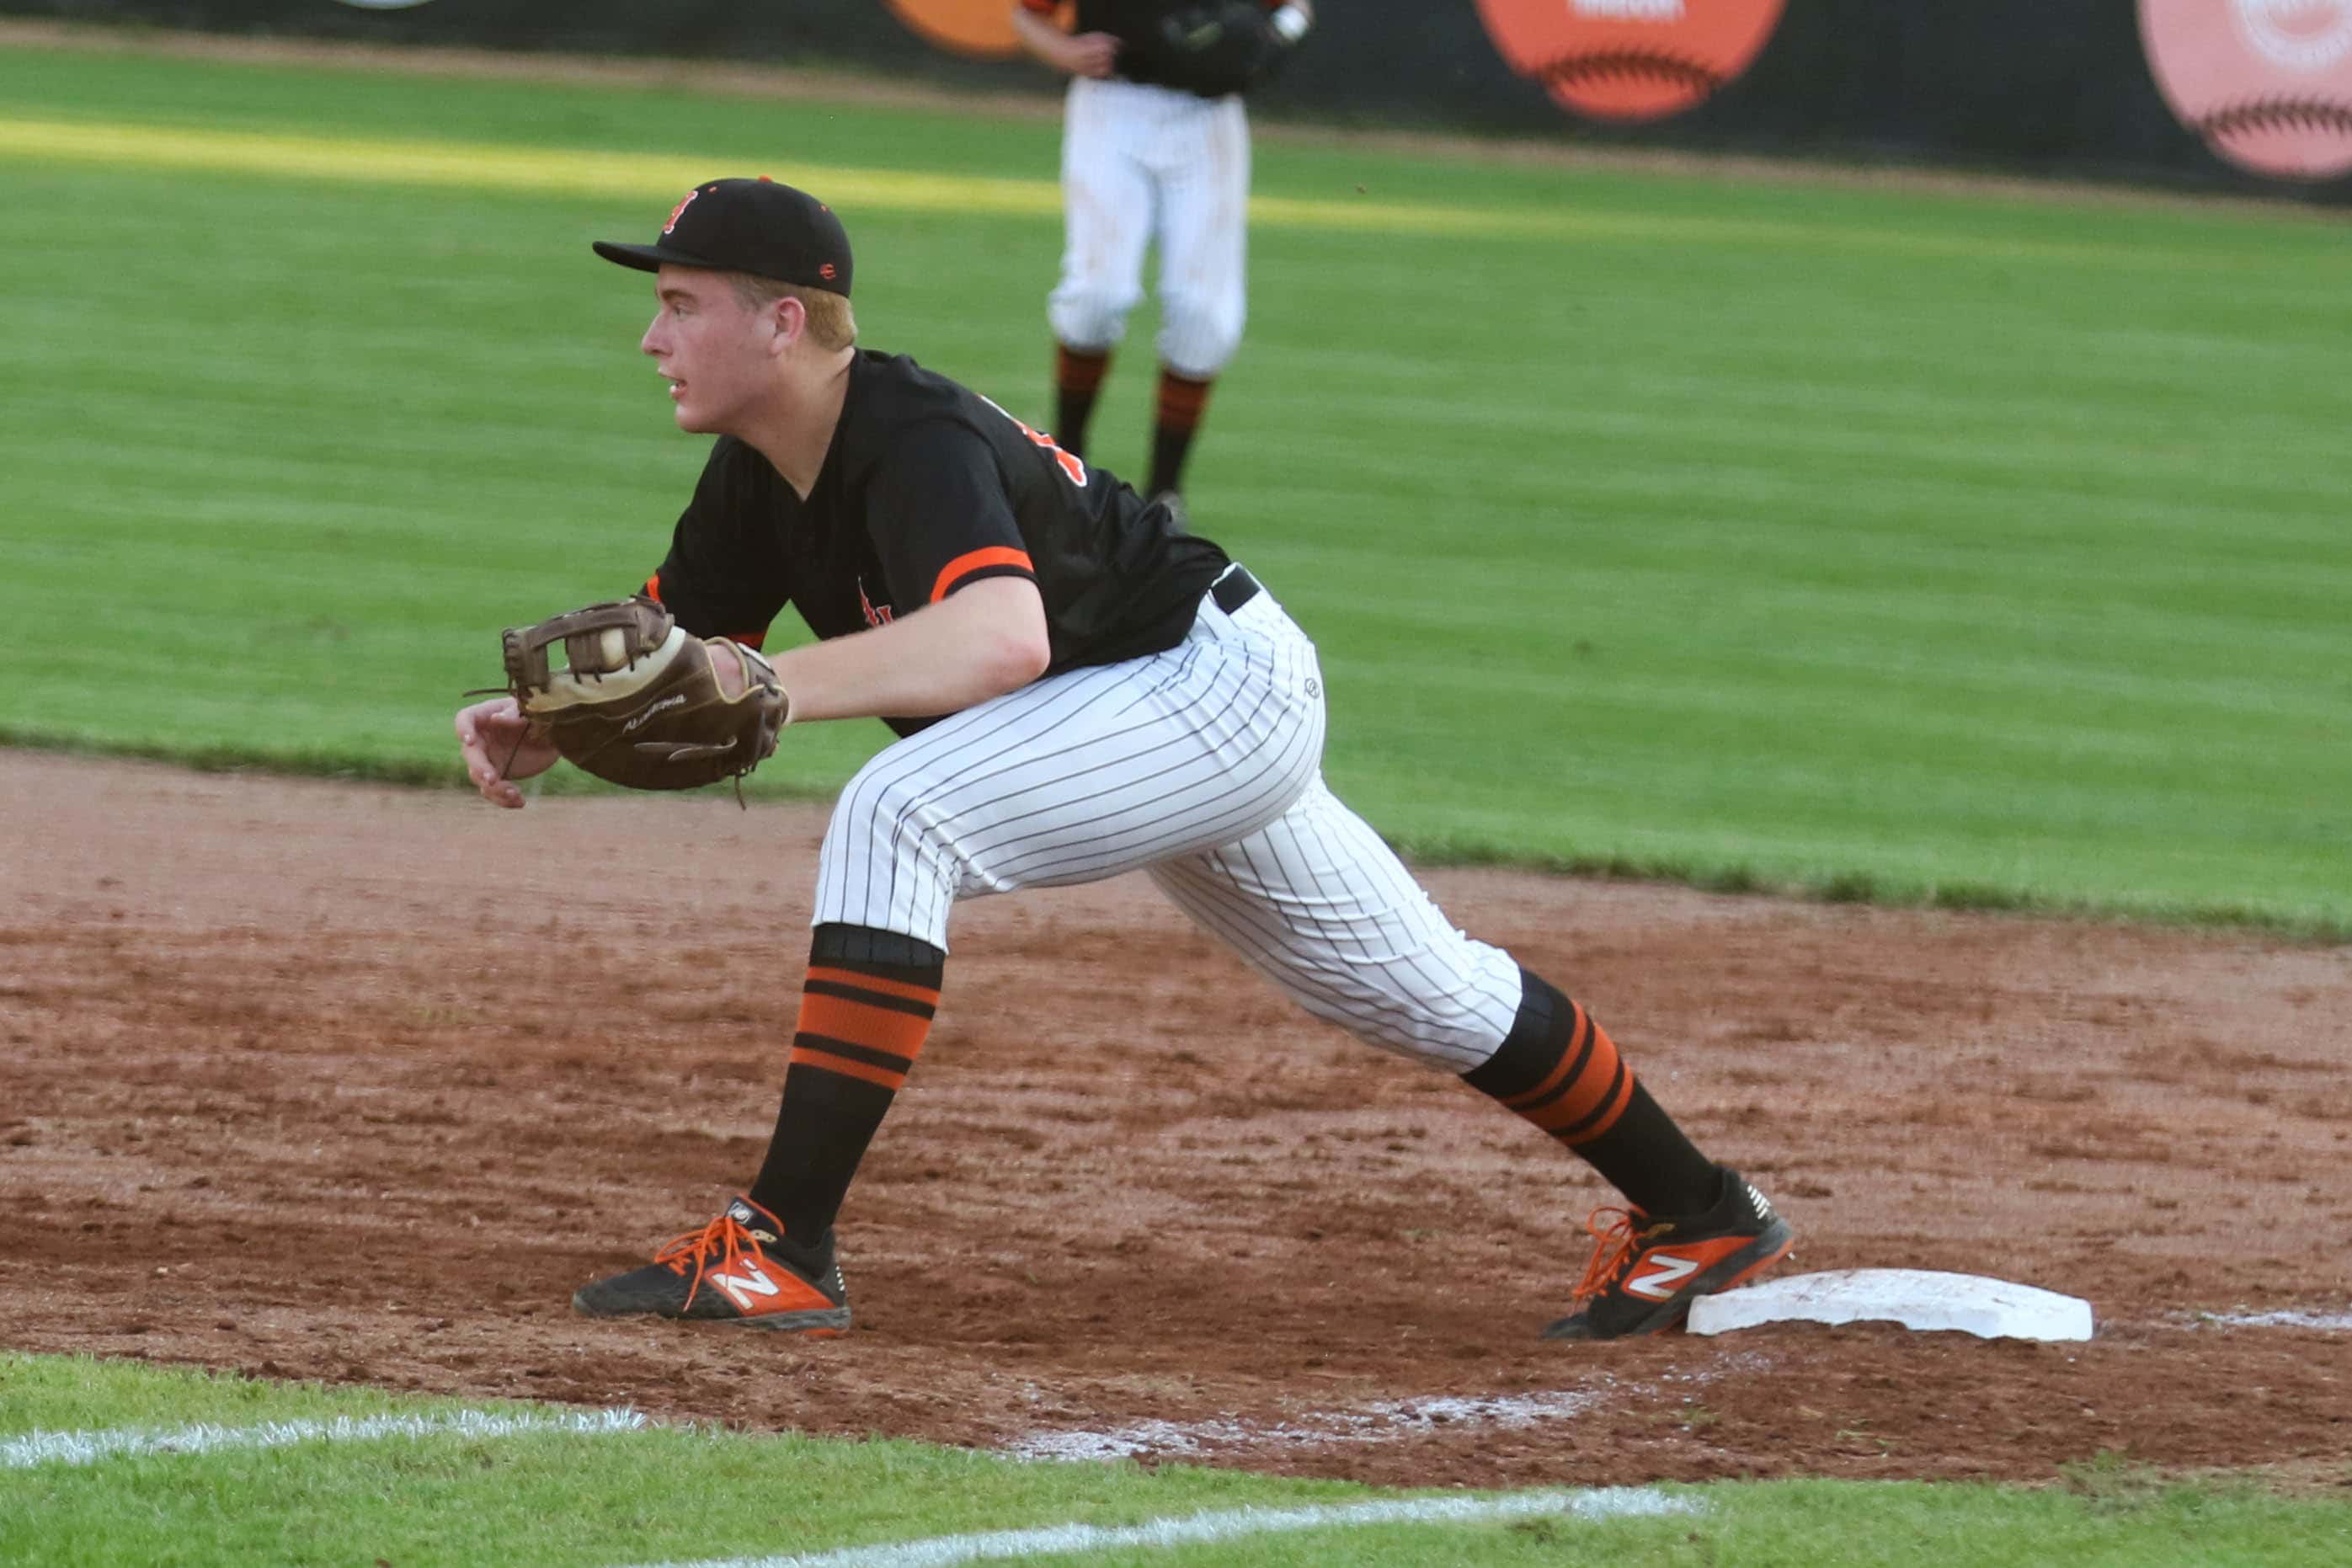 PHOTOS- Hopkinsville Baseball Vs. McCracken County